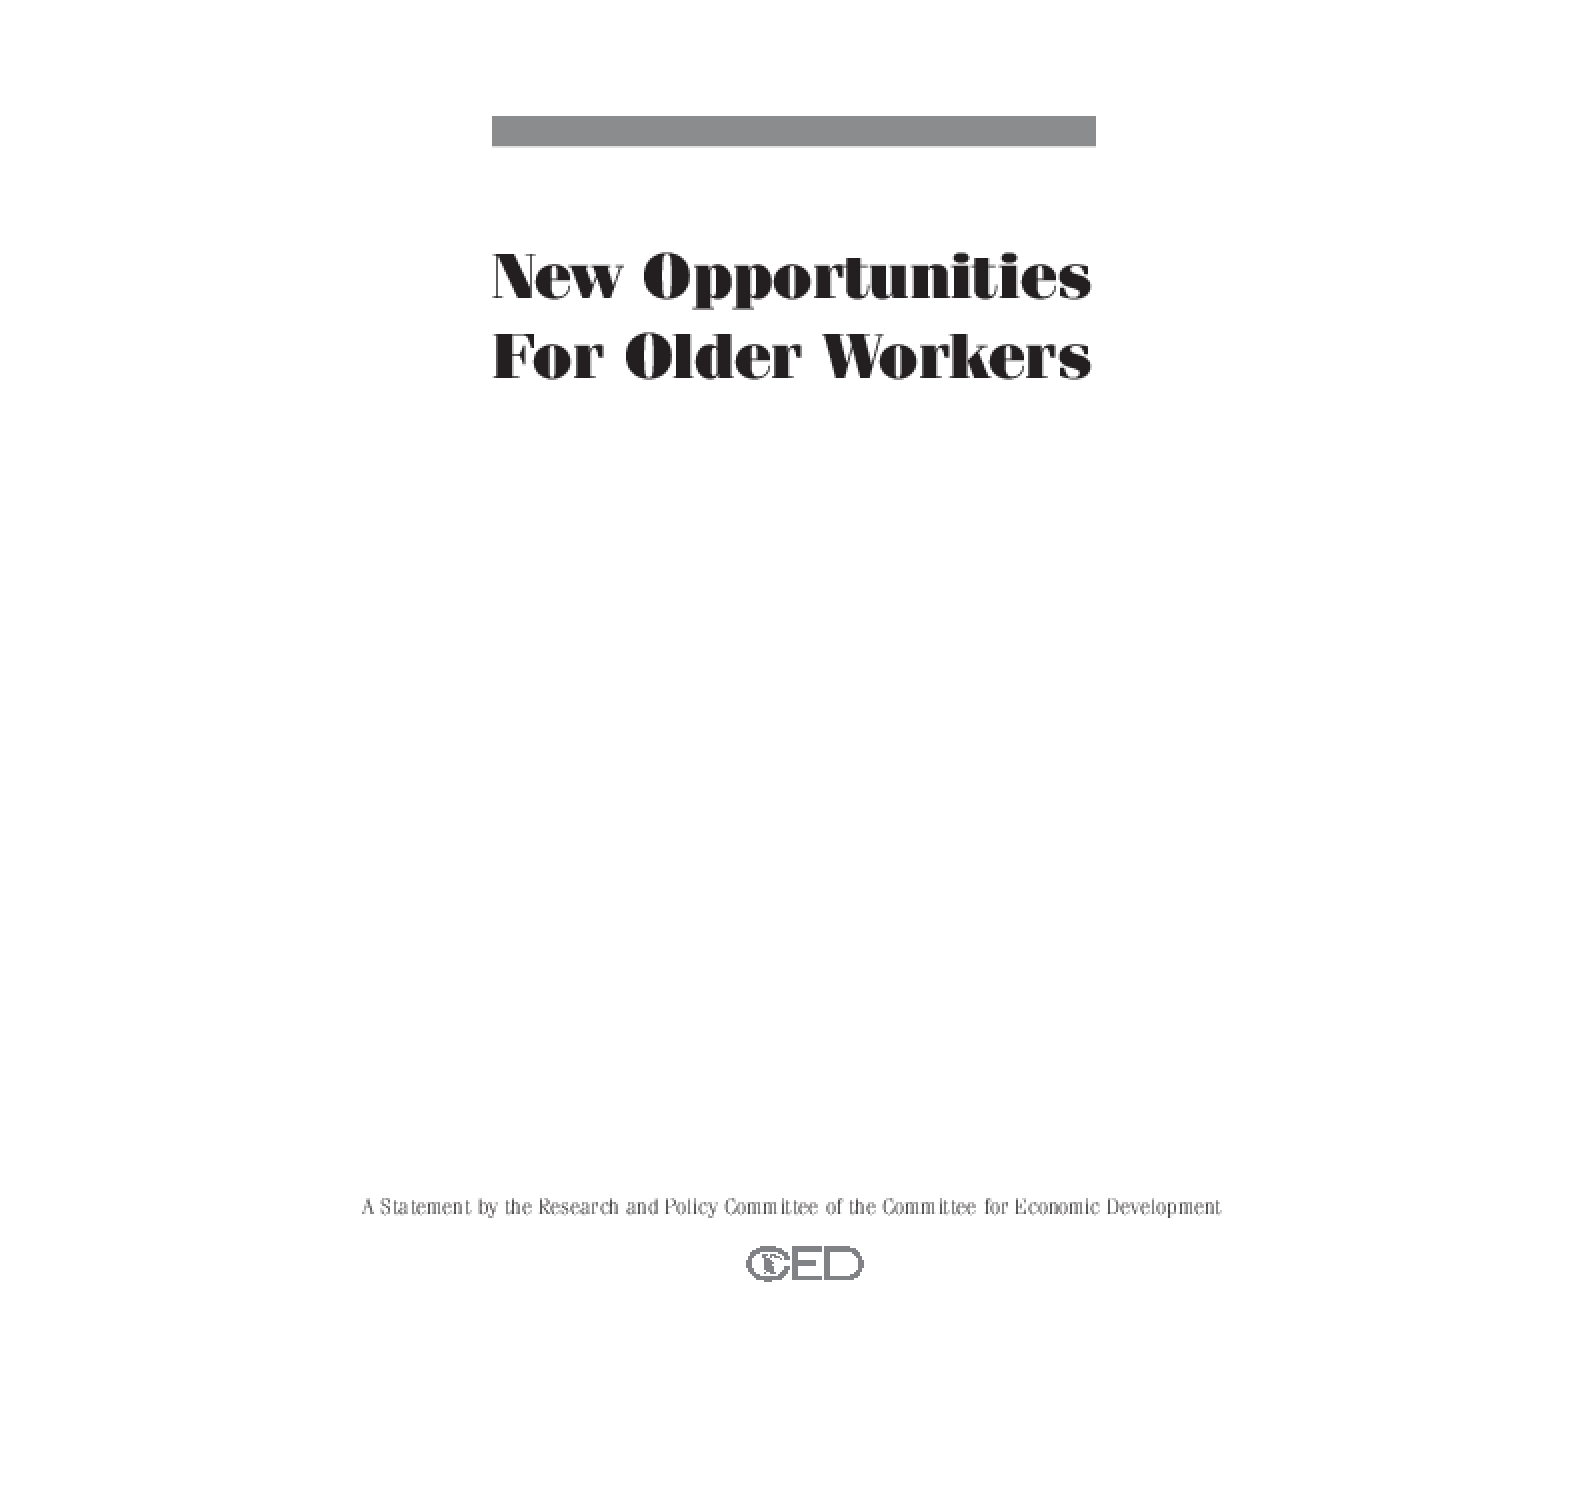 New Opportunities for Older Workers